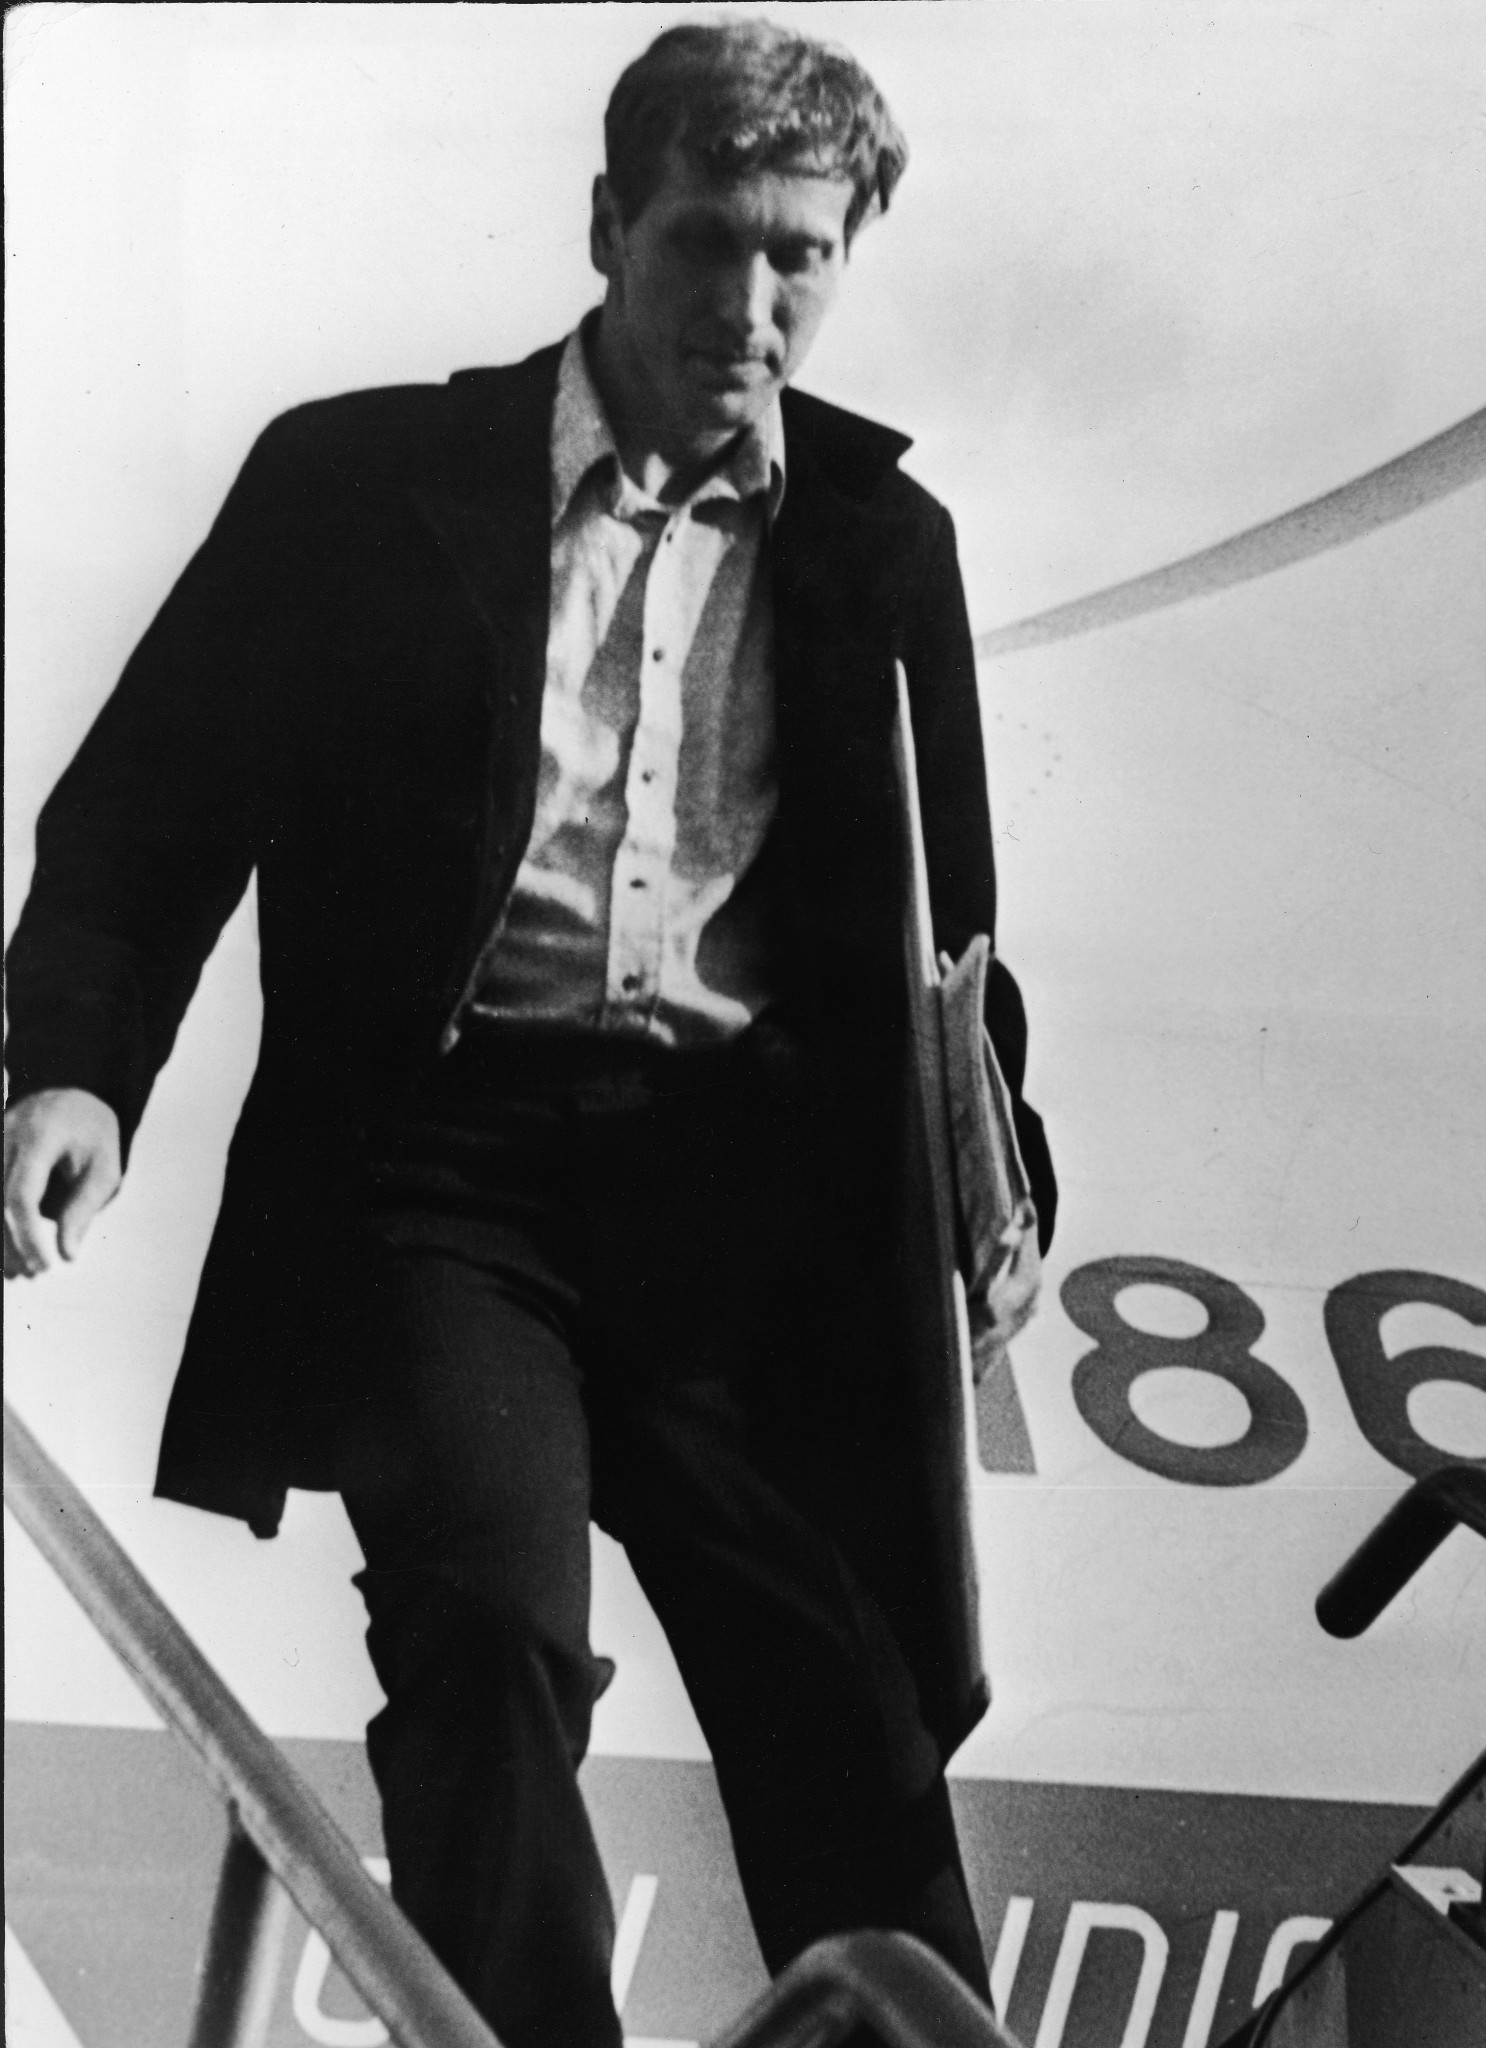 US chess player Bobby Fischer, a troubled genius, arrives in Reykjavik in 1972 for what would be the best remembered world title challenge in history against Boris Spassky of the Soviet Union ©Getty Images